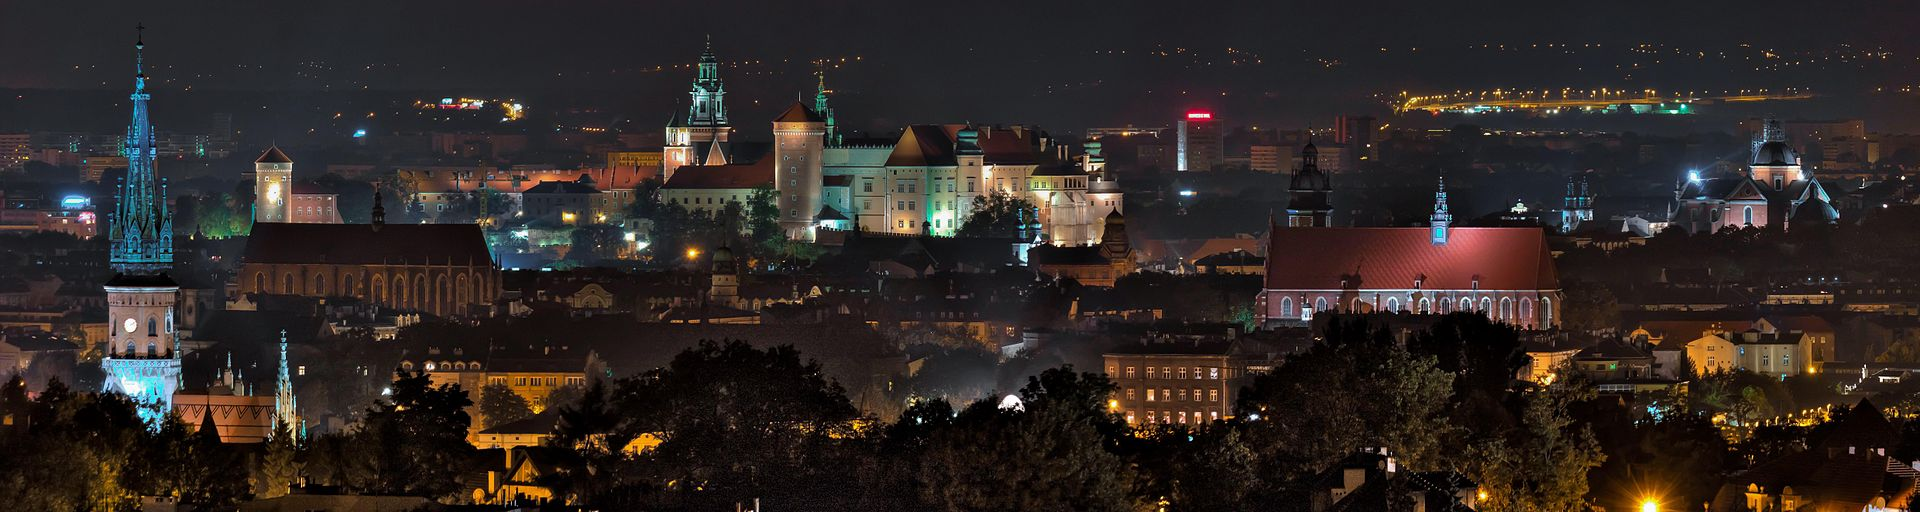 Panorama de Cracovie depuis la colline de Podgorze.